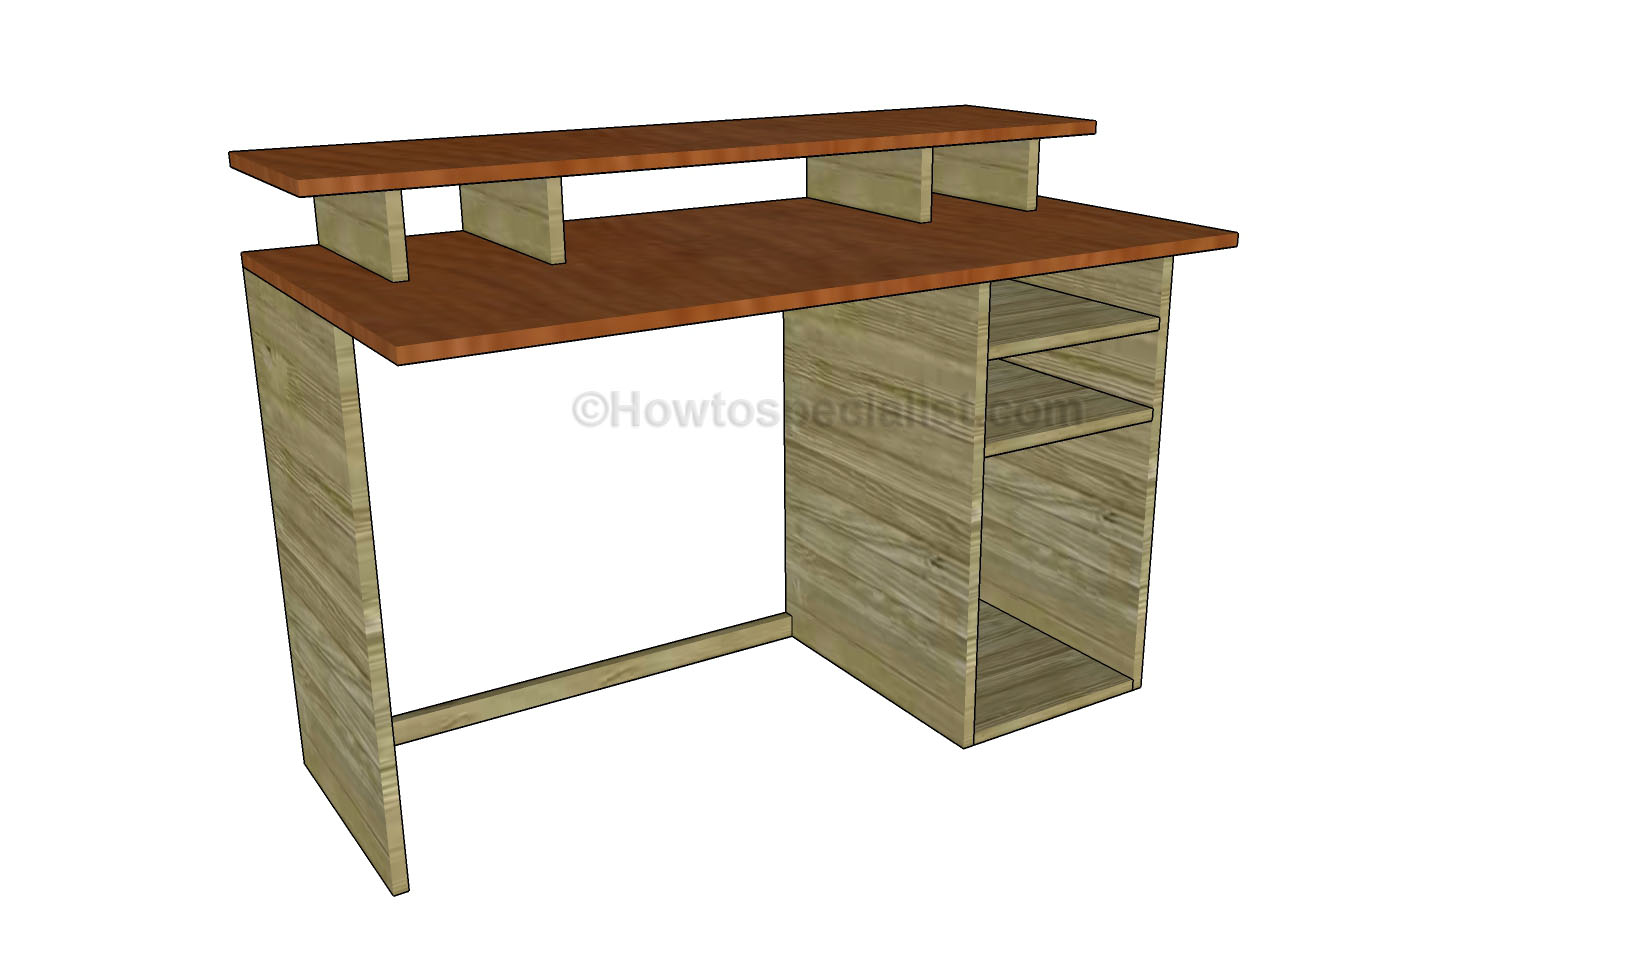 Free Computer Desk Plans | HowToSpecialist - How to Build, Step by ...